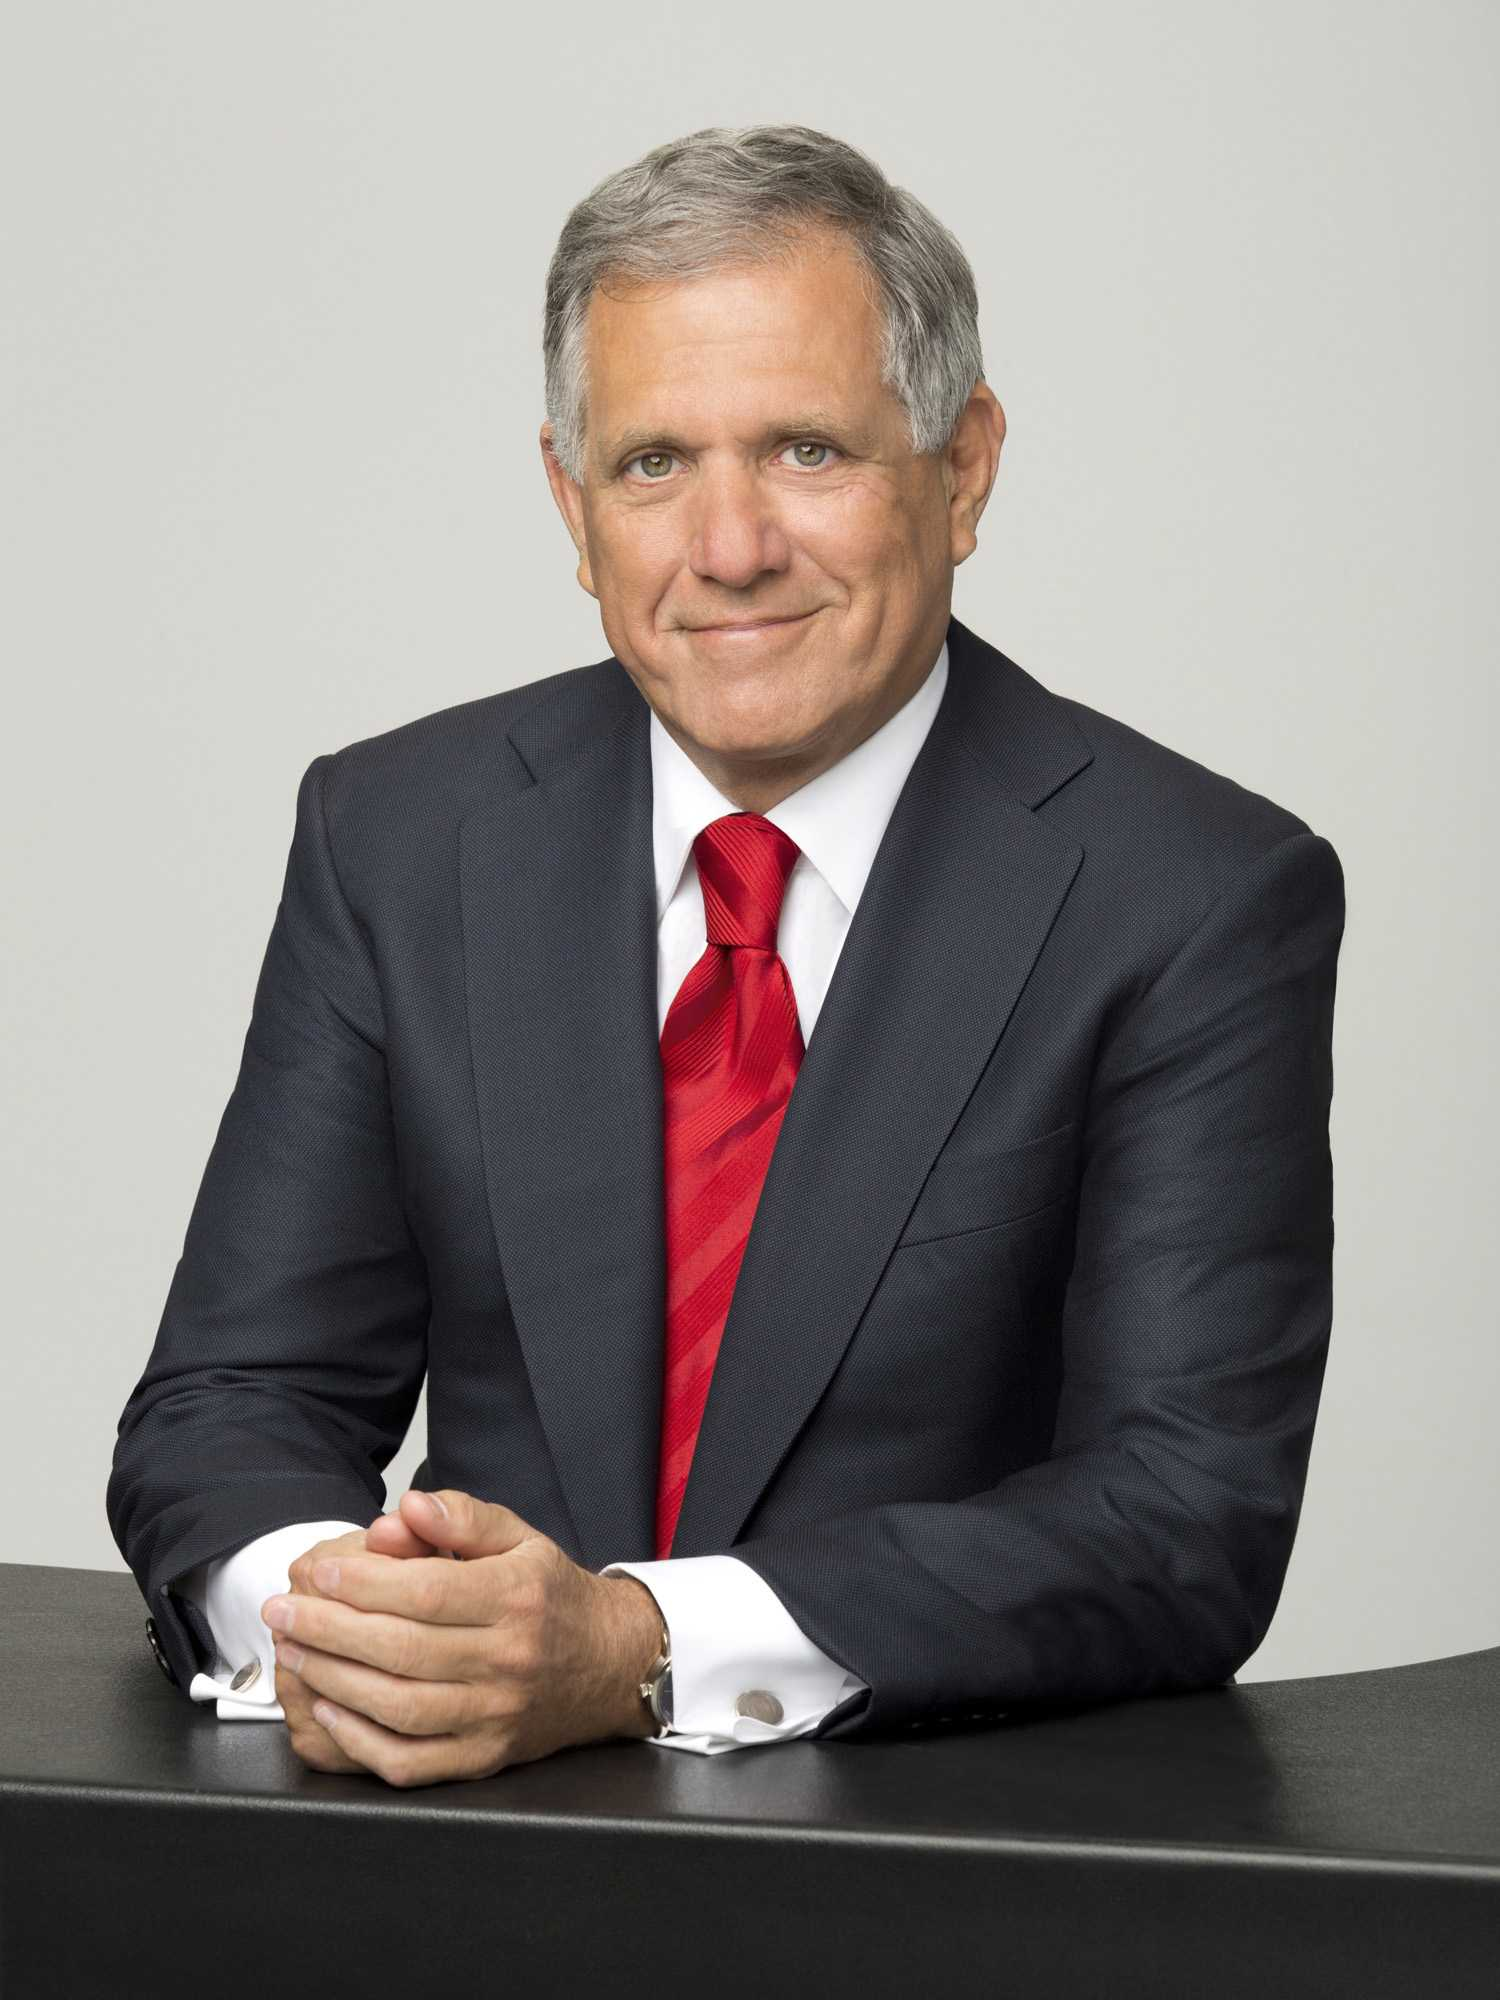 Leslie Moonves, President and Chief Executive Officer, CBS Corporation  Photo: Bill Inoshita/CBS  2013 CBS Broadcasting, Inc. All Rights Reserved.